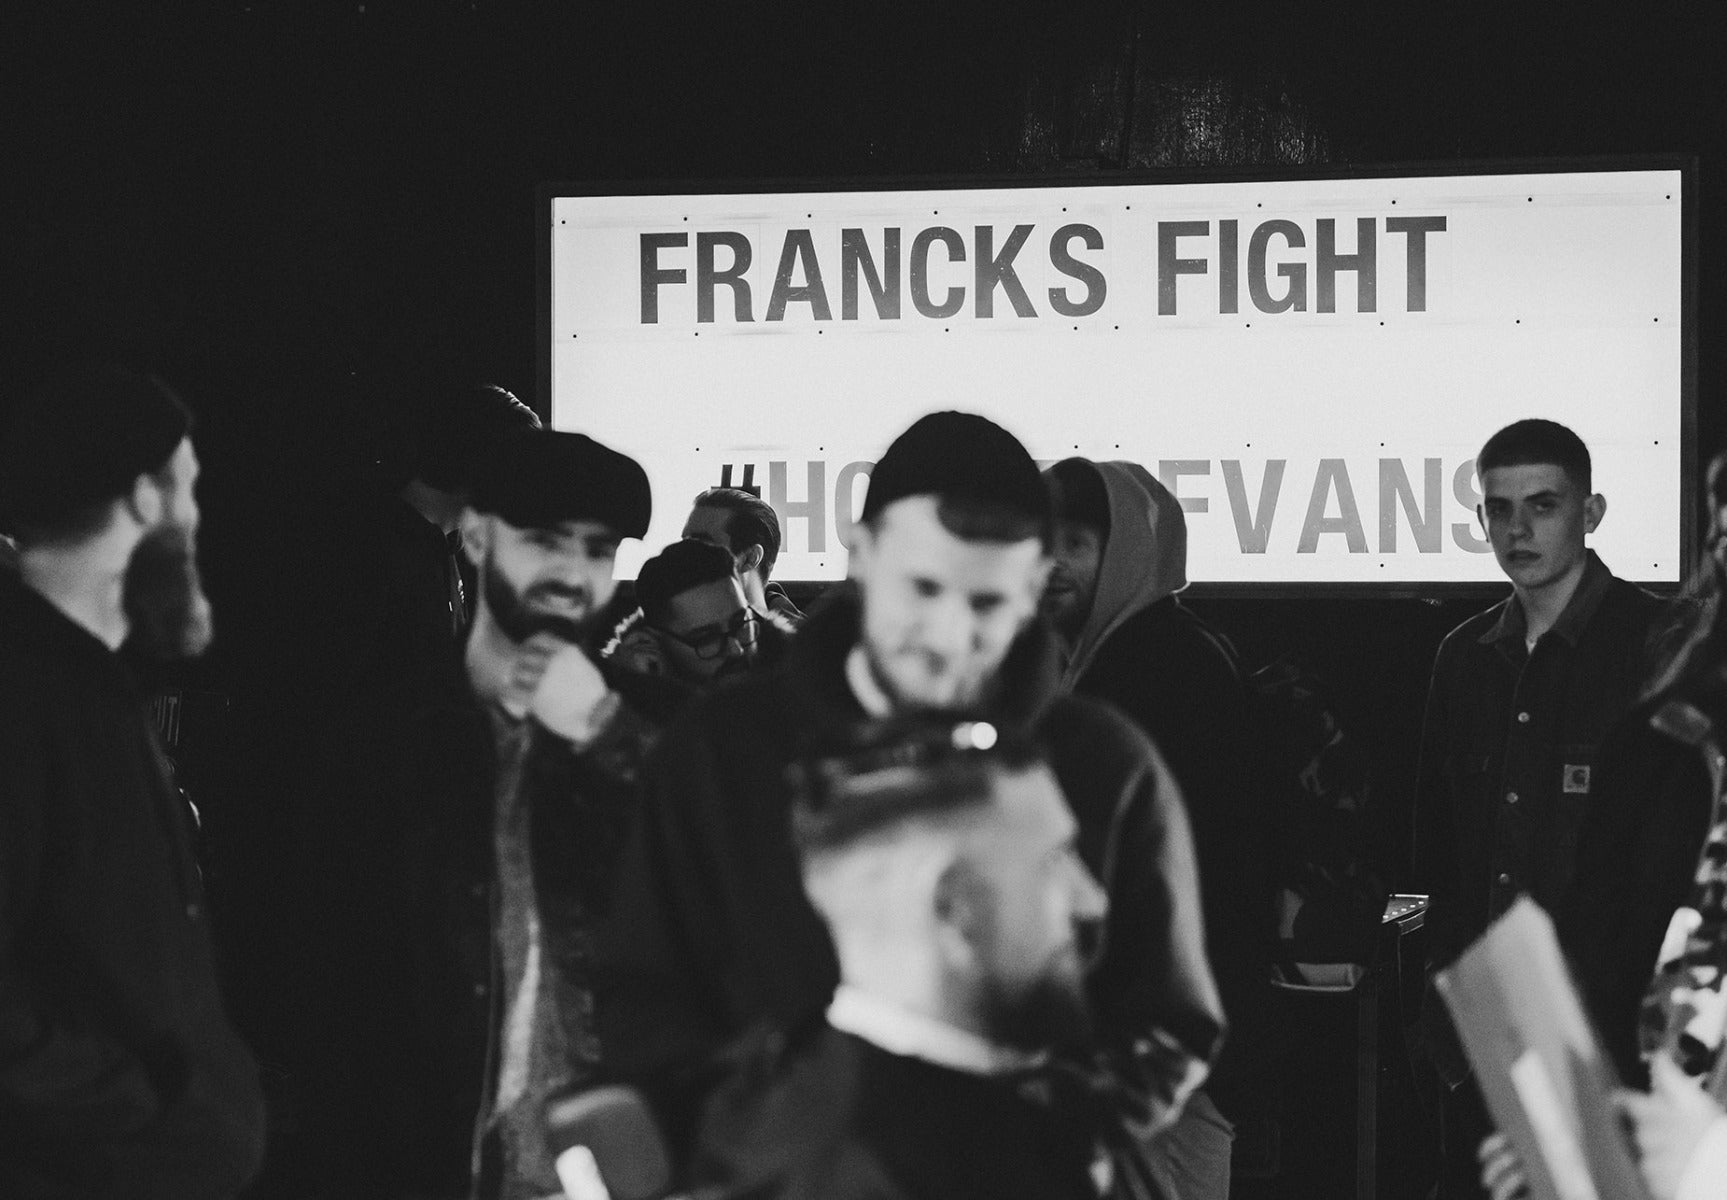 Group of people with Francks Fight sign in the background